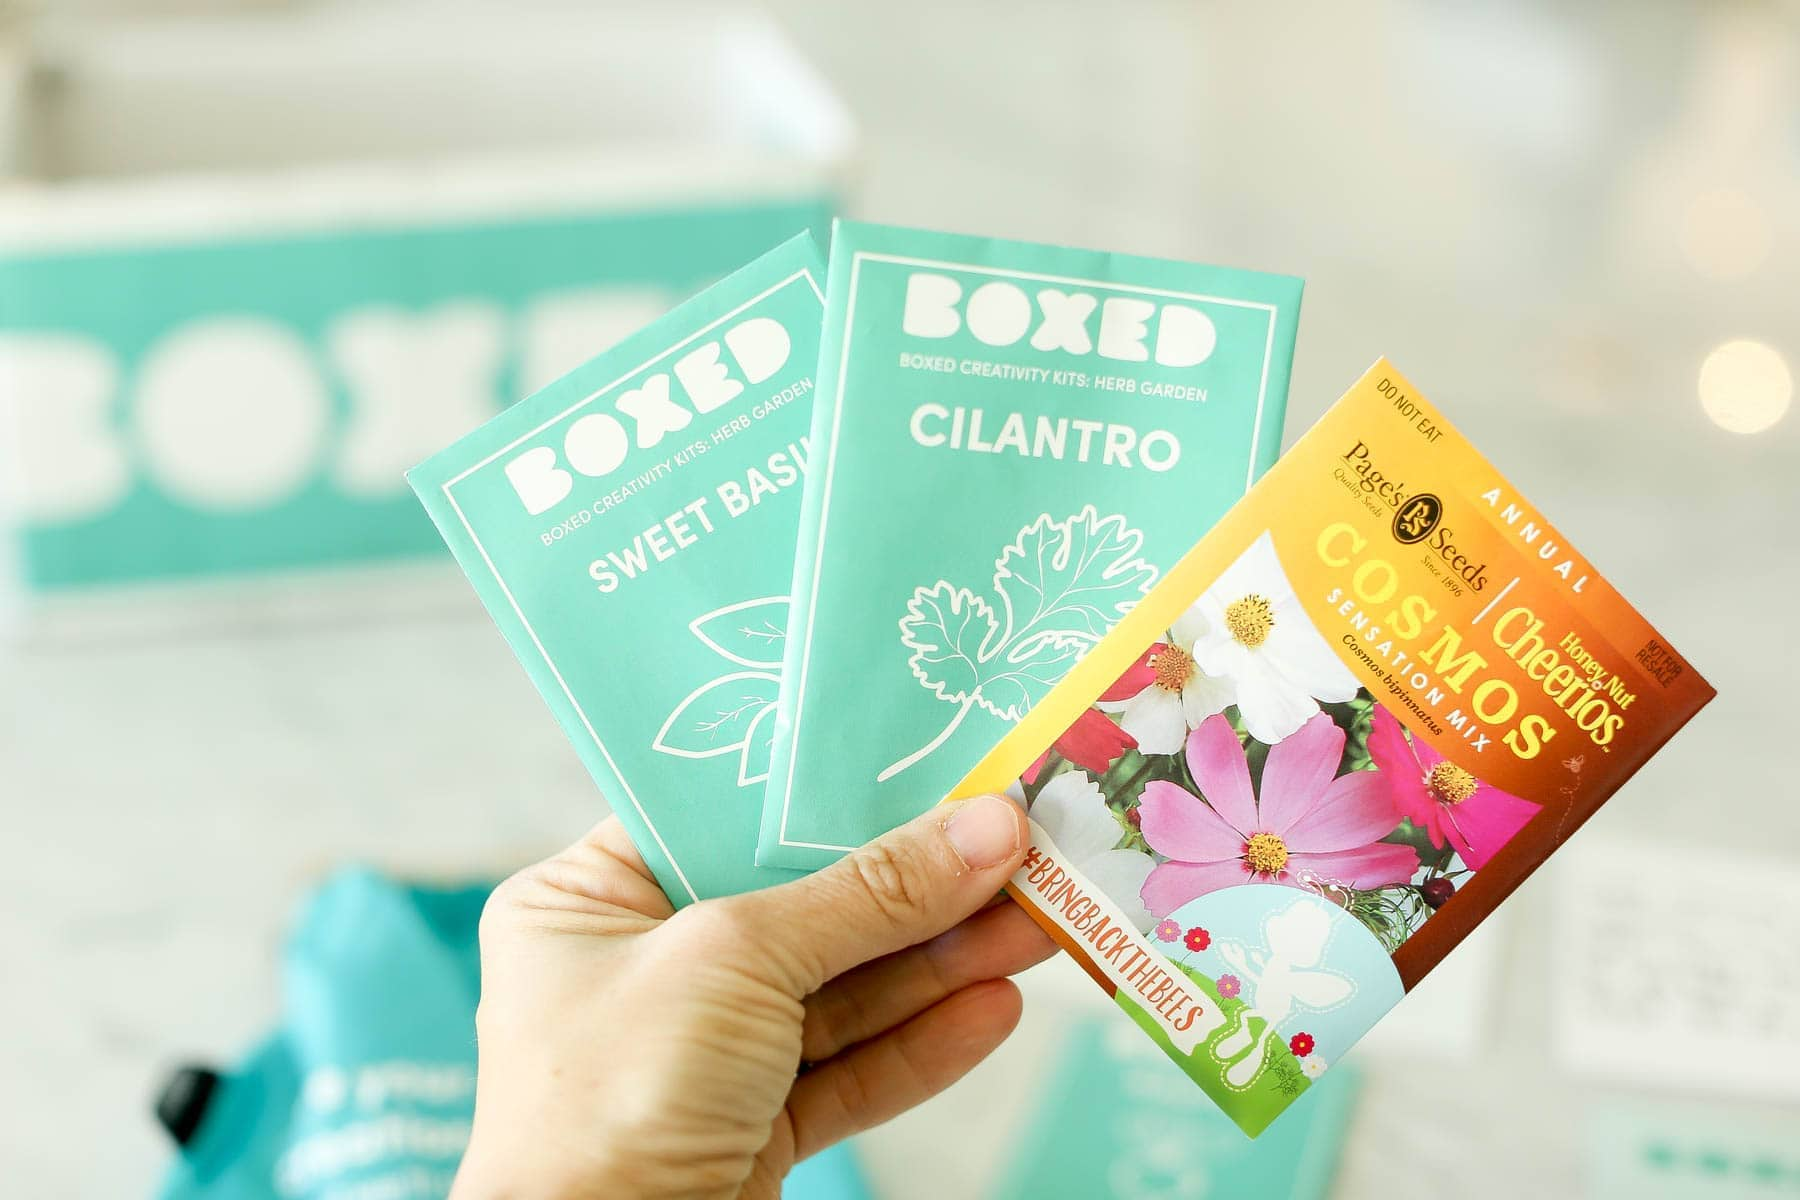 Free seed packets from Boxed and General Mills' Bring Back the Bees campaign